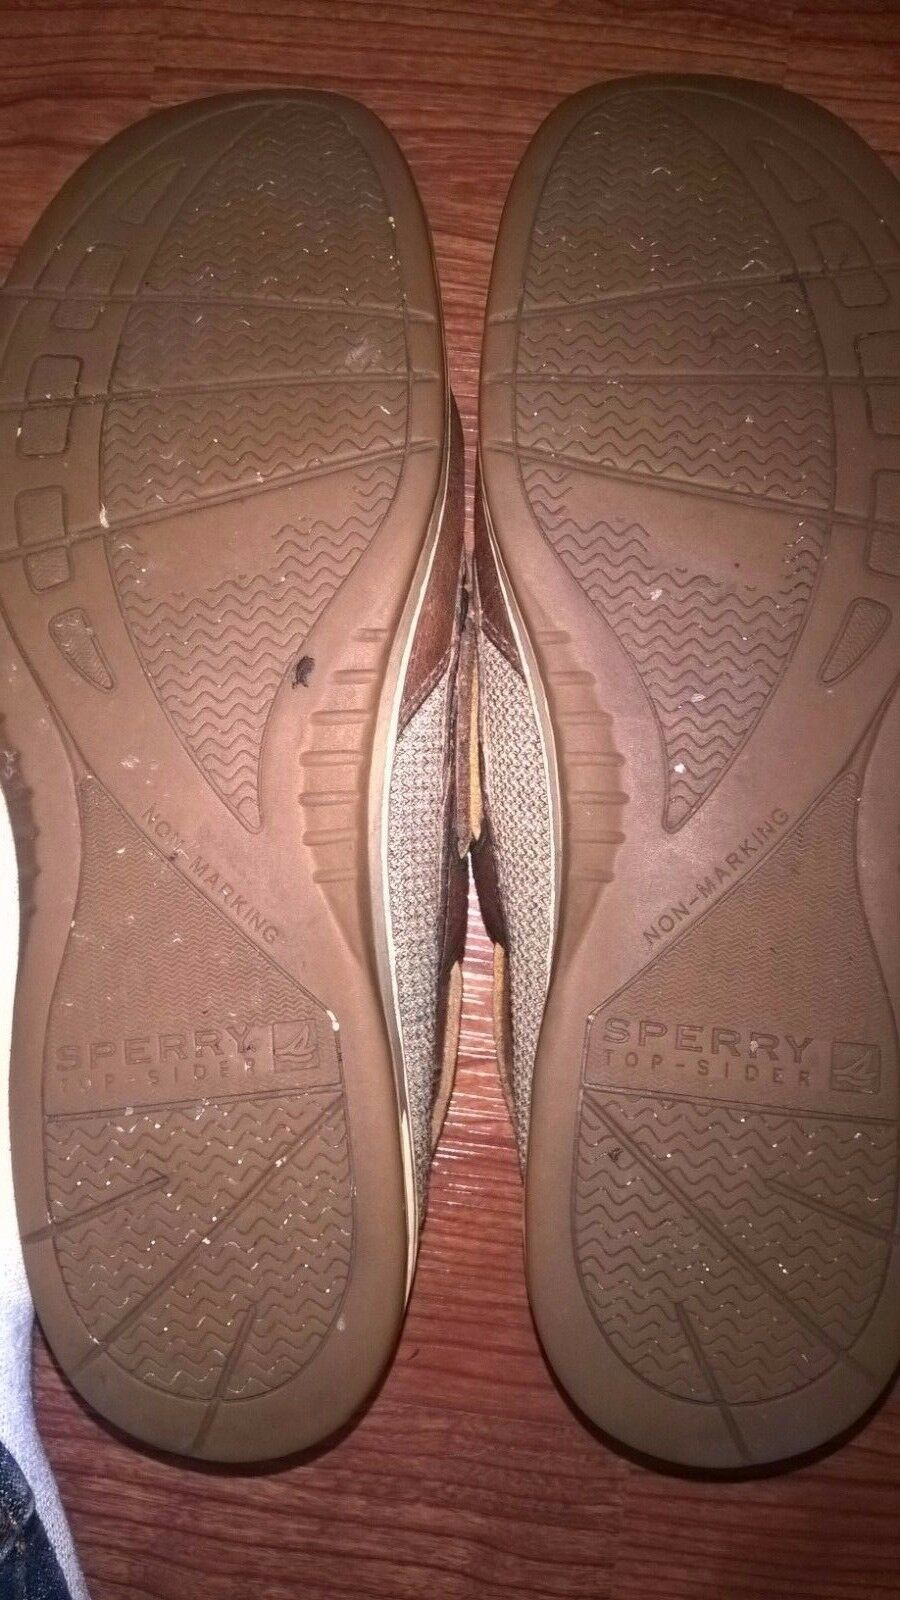 Sperry Brown Top-Sider Bluefish 2-Eye Brown Sperry Boat Shoes Sz10 EUC 066e69